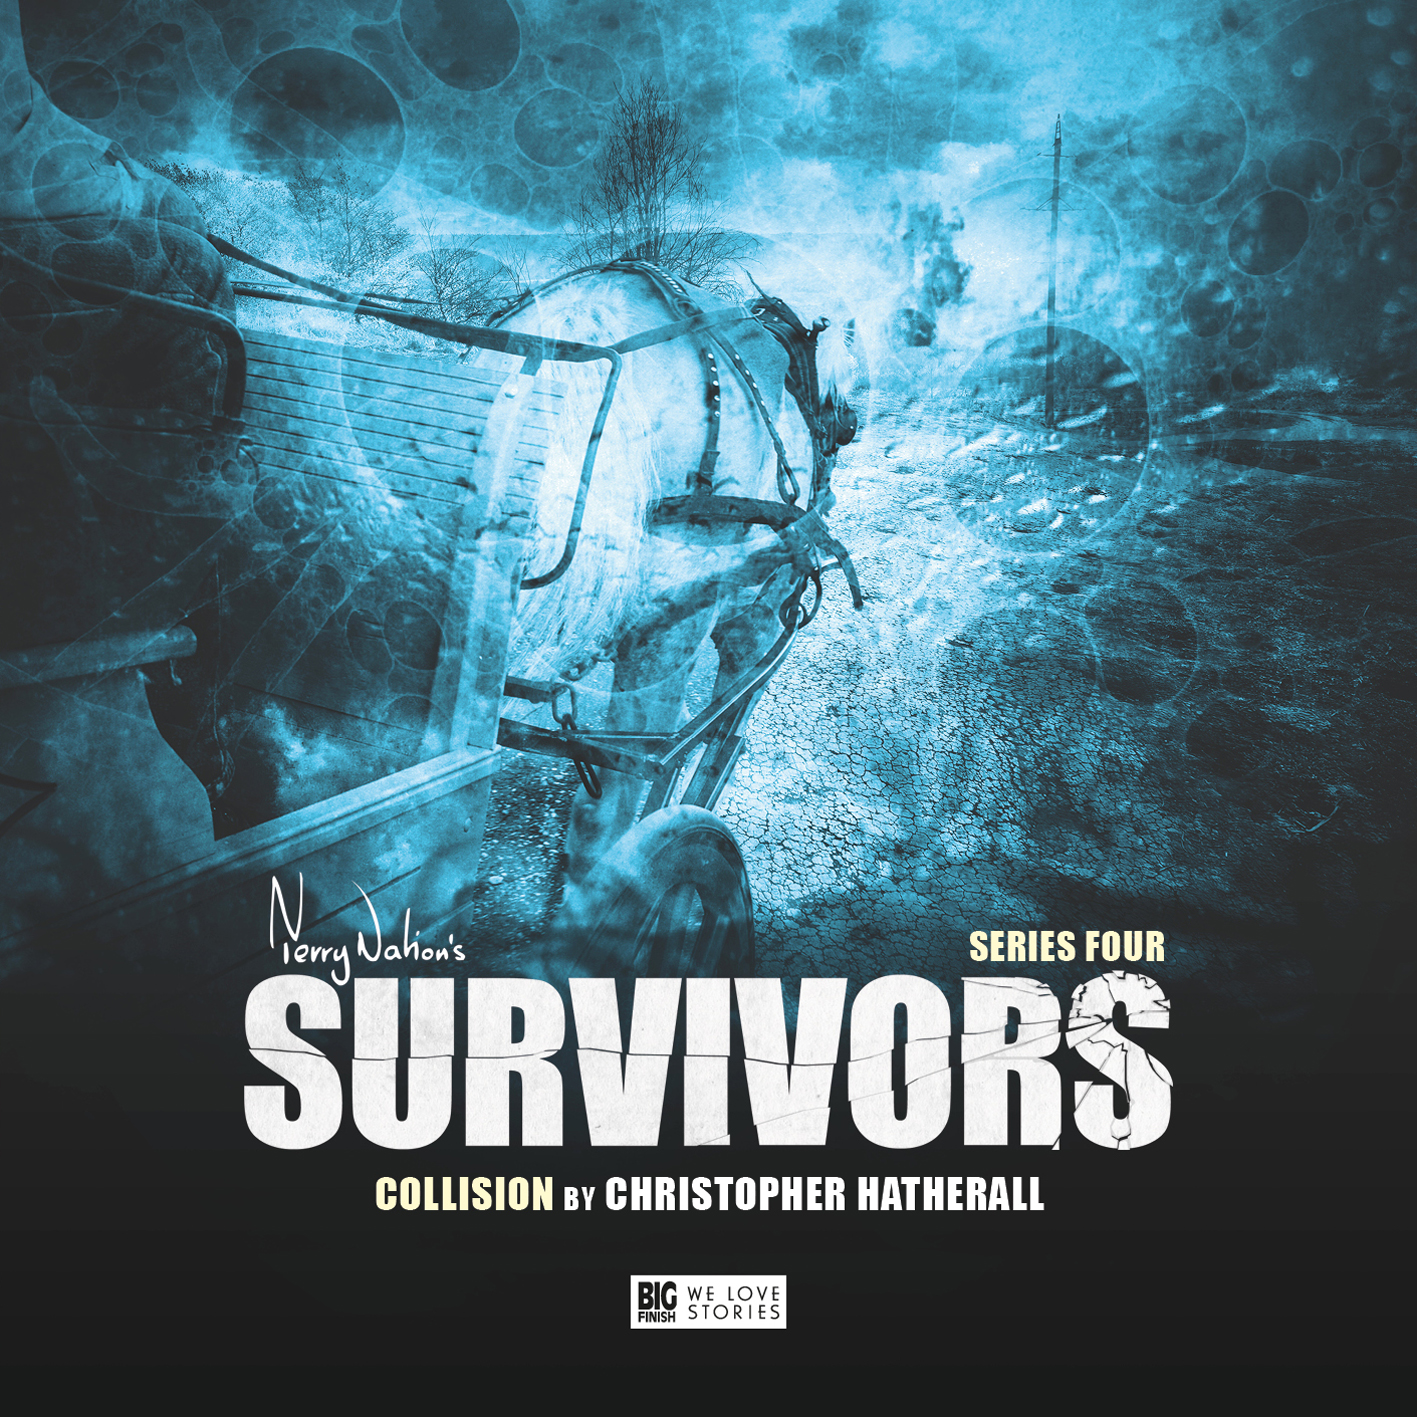 Episode image for Survivors 4:3 Collision